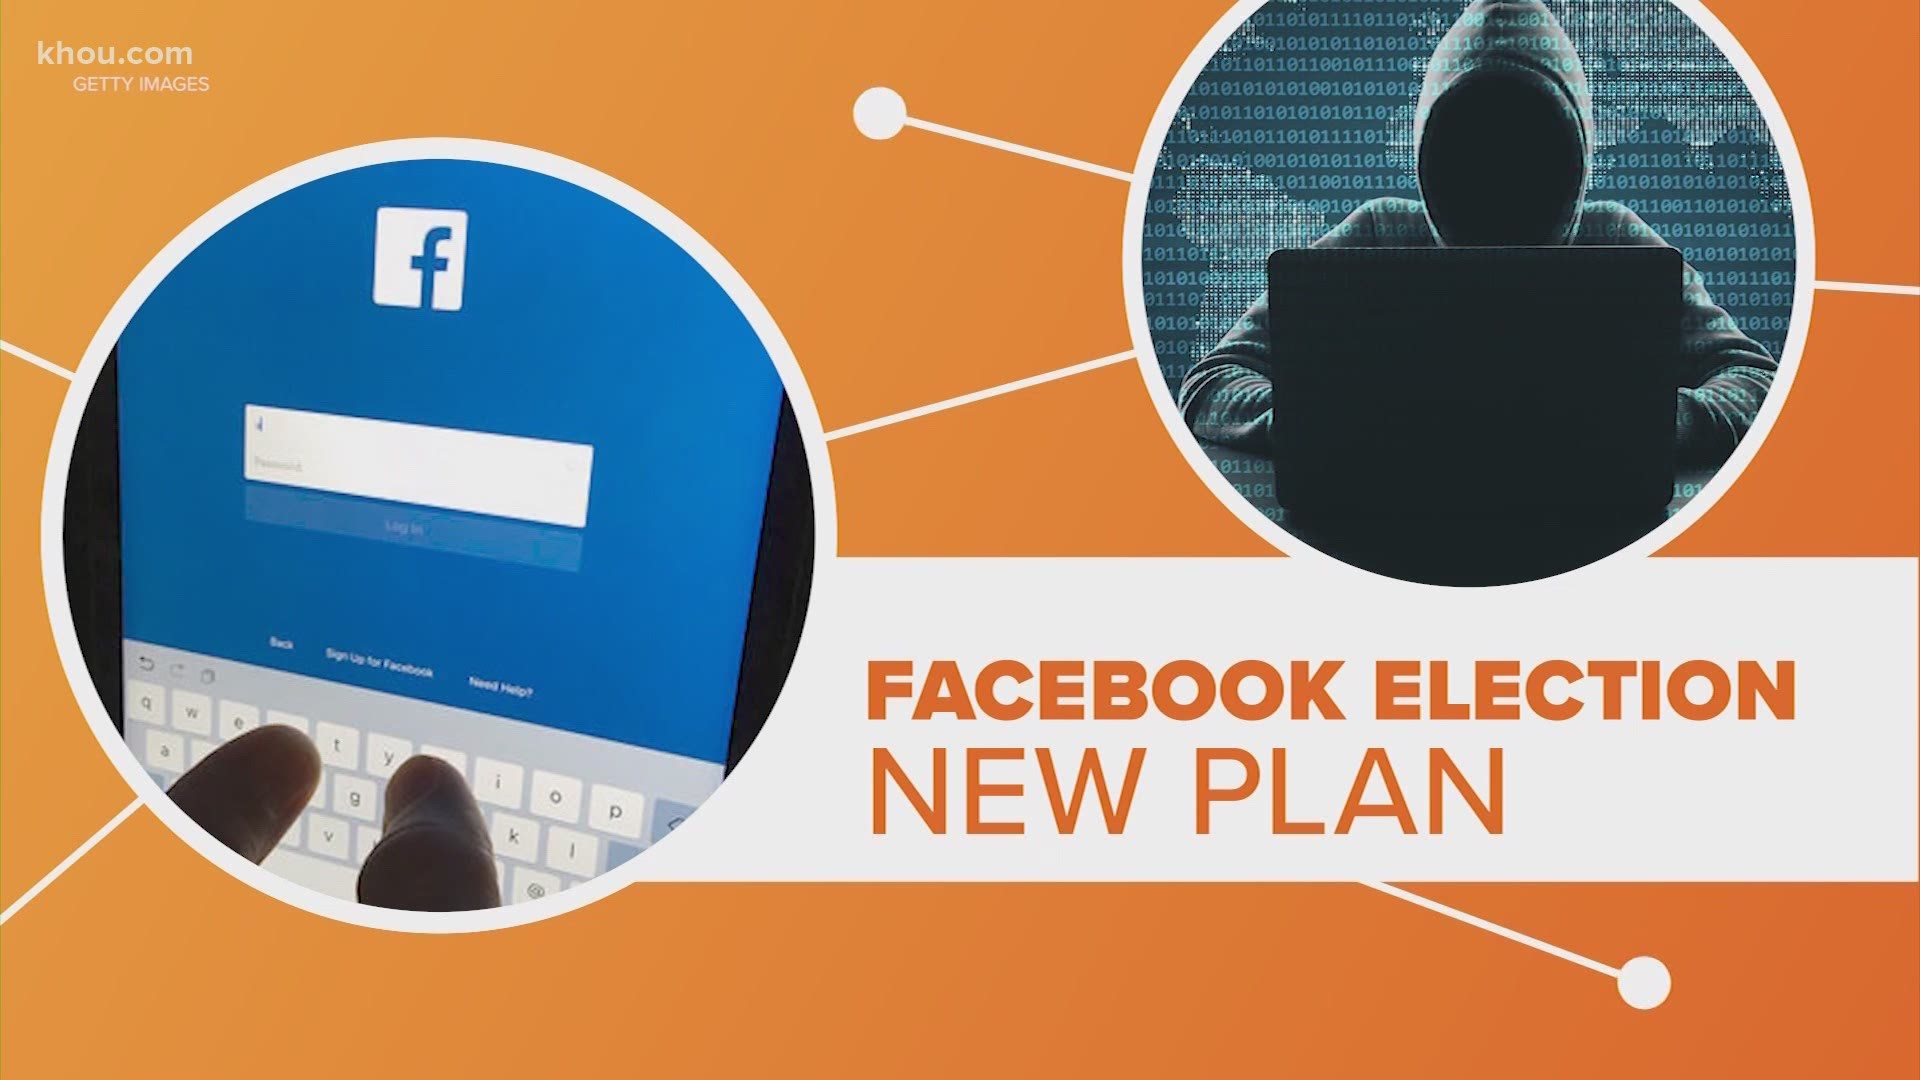 Election 2020 Facebook Wants To Crack Down On Misinformation Khou Com